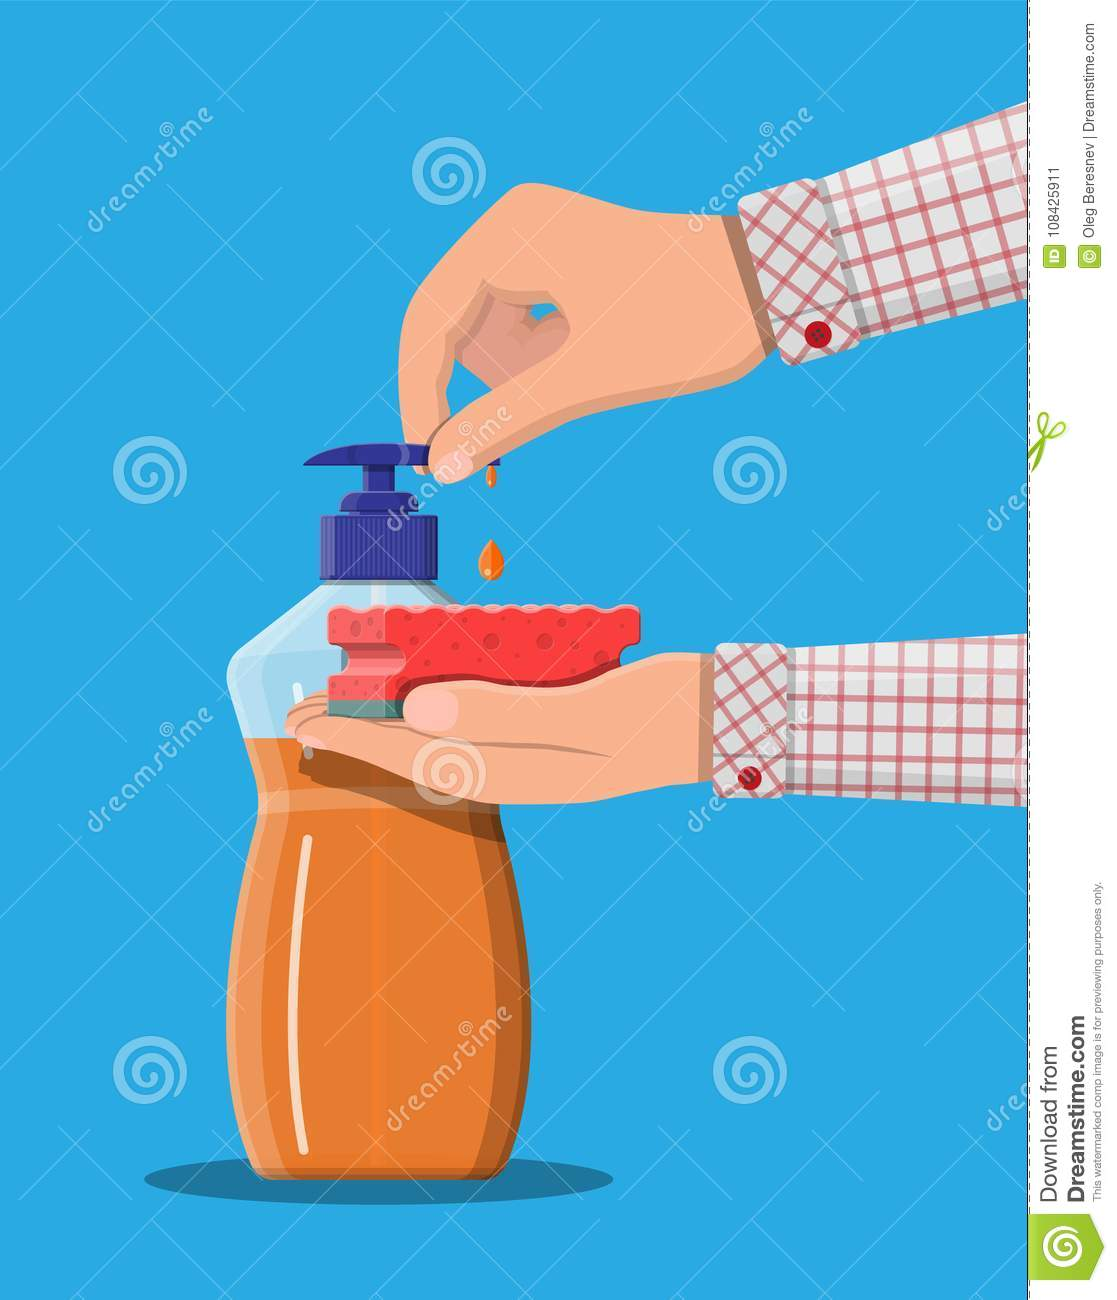 Bottle with dispenser and sponge in hands.